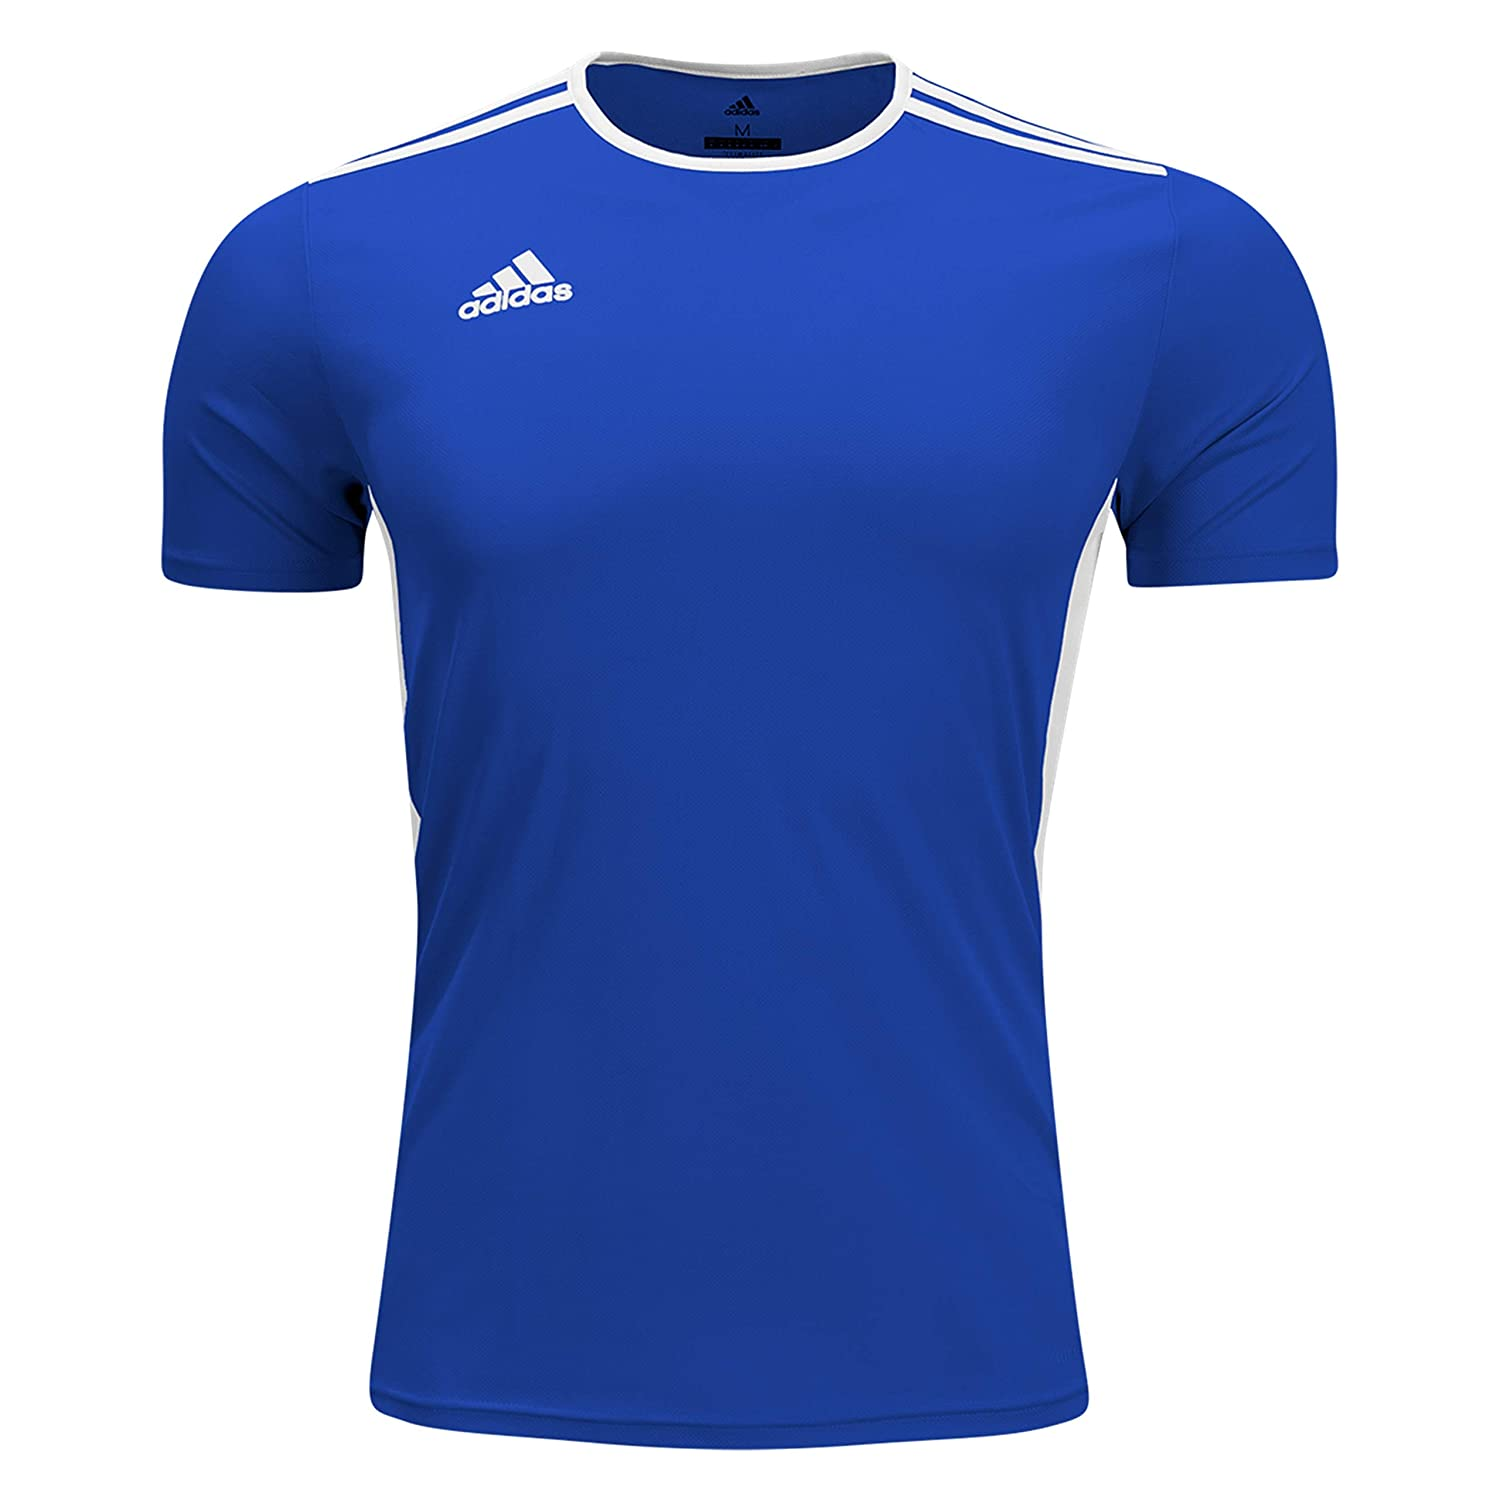 bcf31f42a65c Amazon.com  adidas Boys Estro 12 Soccer Jersey T-Shirt Cobalt White Size  Youth  Shoes